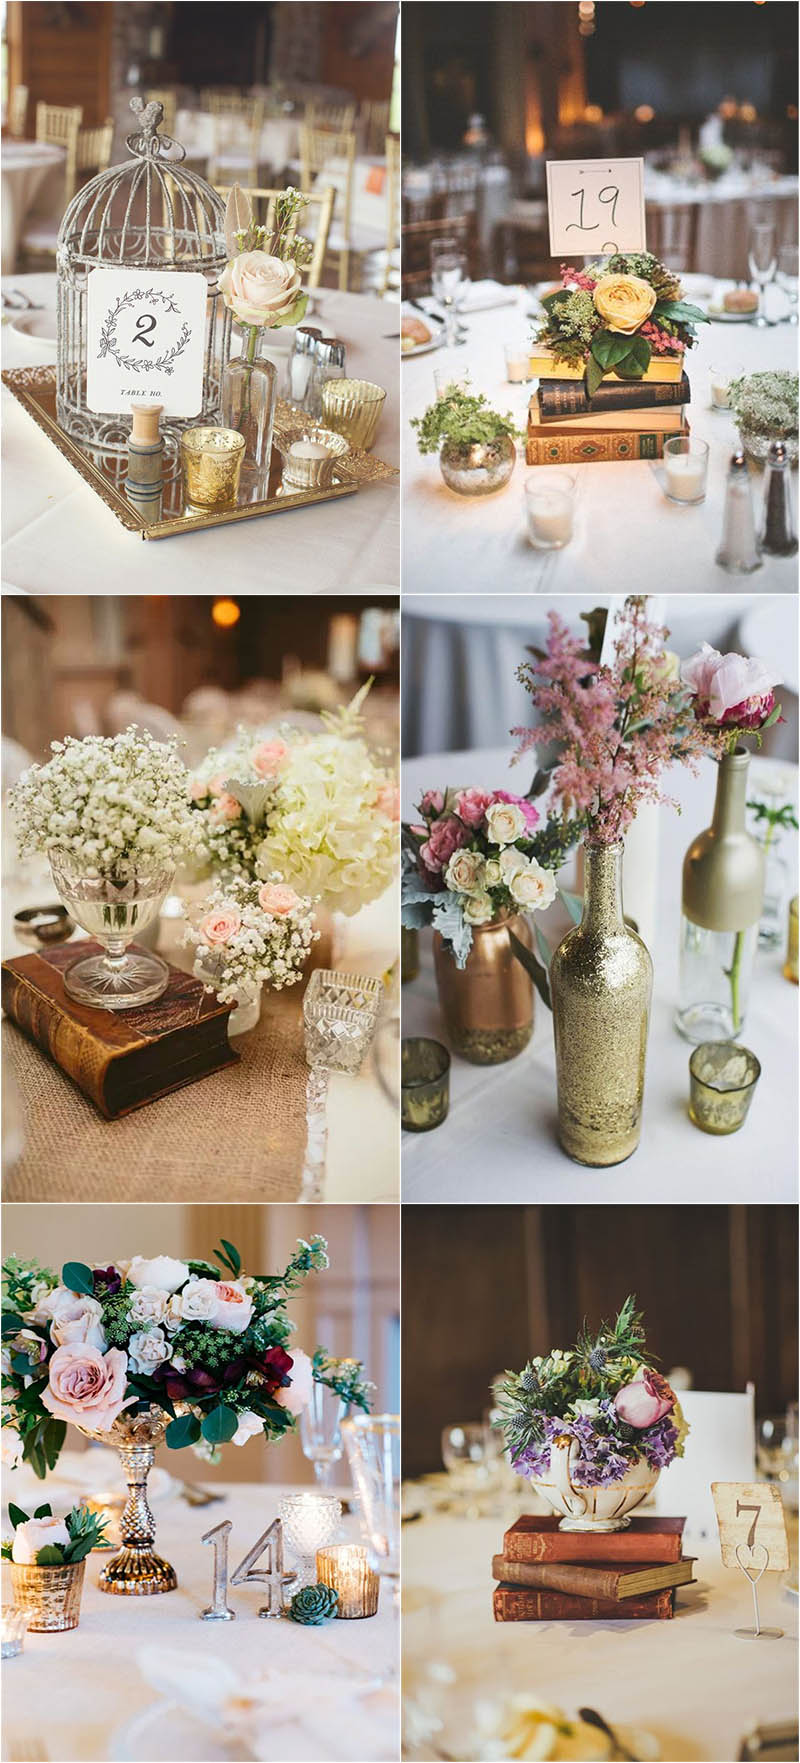 Top 5 stylish wedding centerpieces ideas for 2018 elegant and vintage wedding centerpieces junglespirit